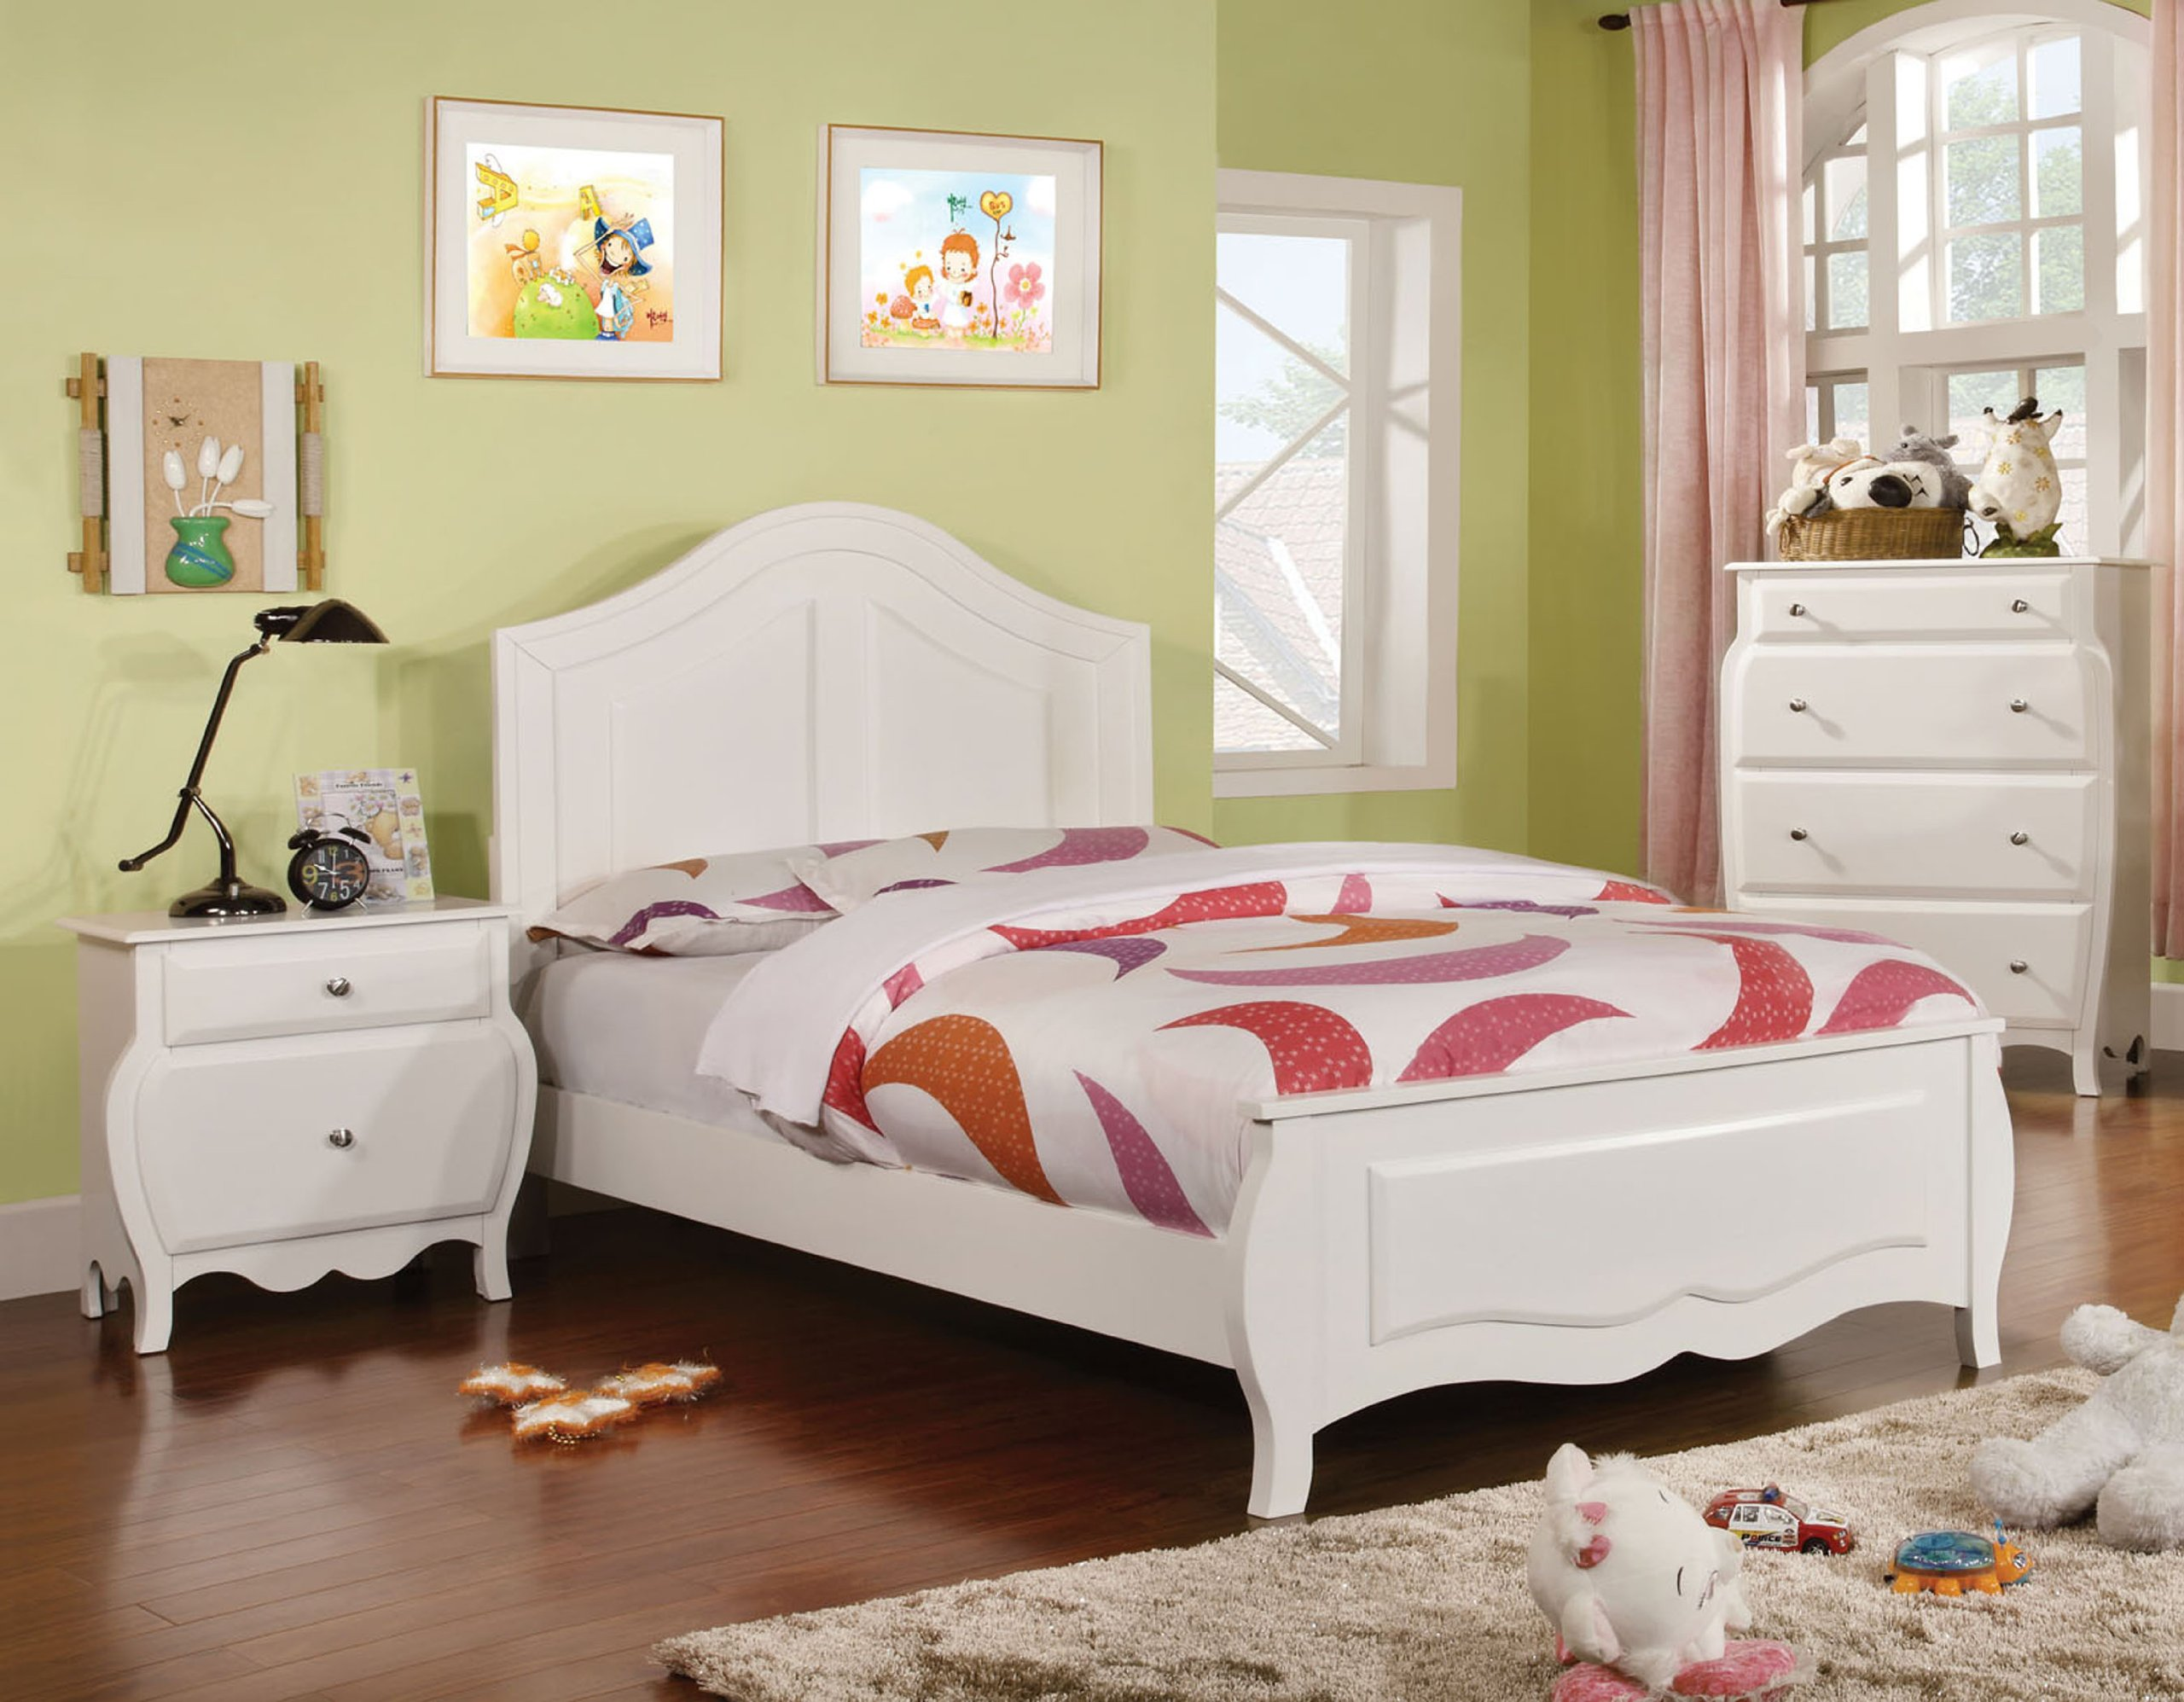 Furniture of America Lionel Size Youth Bedroom, Twin, White by Furniture of America